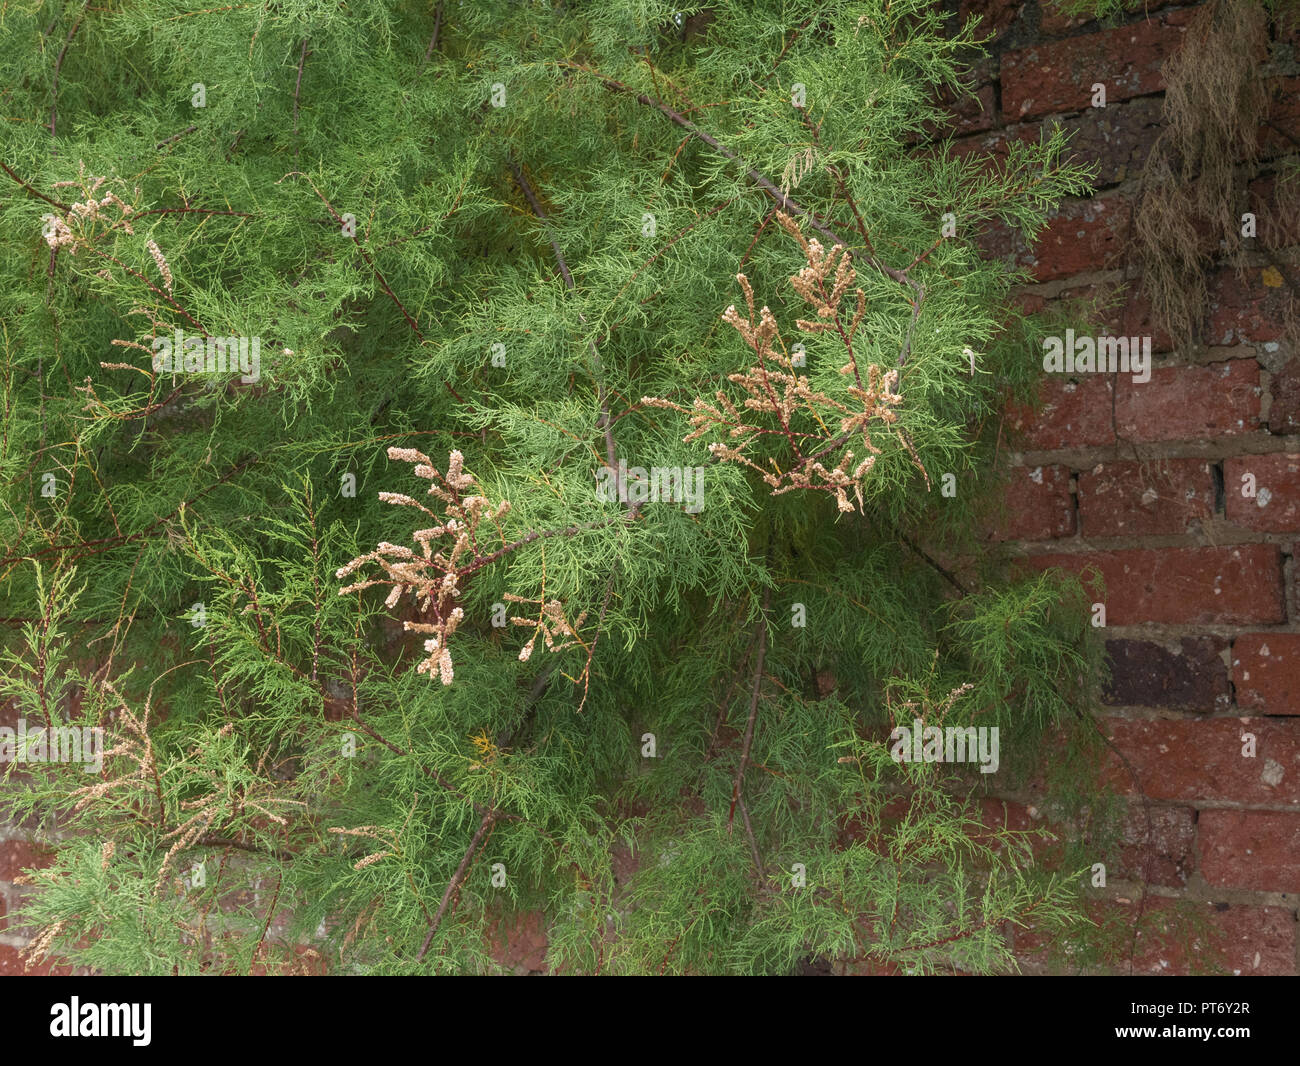 Form of Tamarisk - possibly Tamarix gallica - in flower and growing in Newquay, Cornwall. Parts of Tamarisk used as medicinal plant in herbal remedies - Stock Image